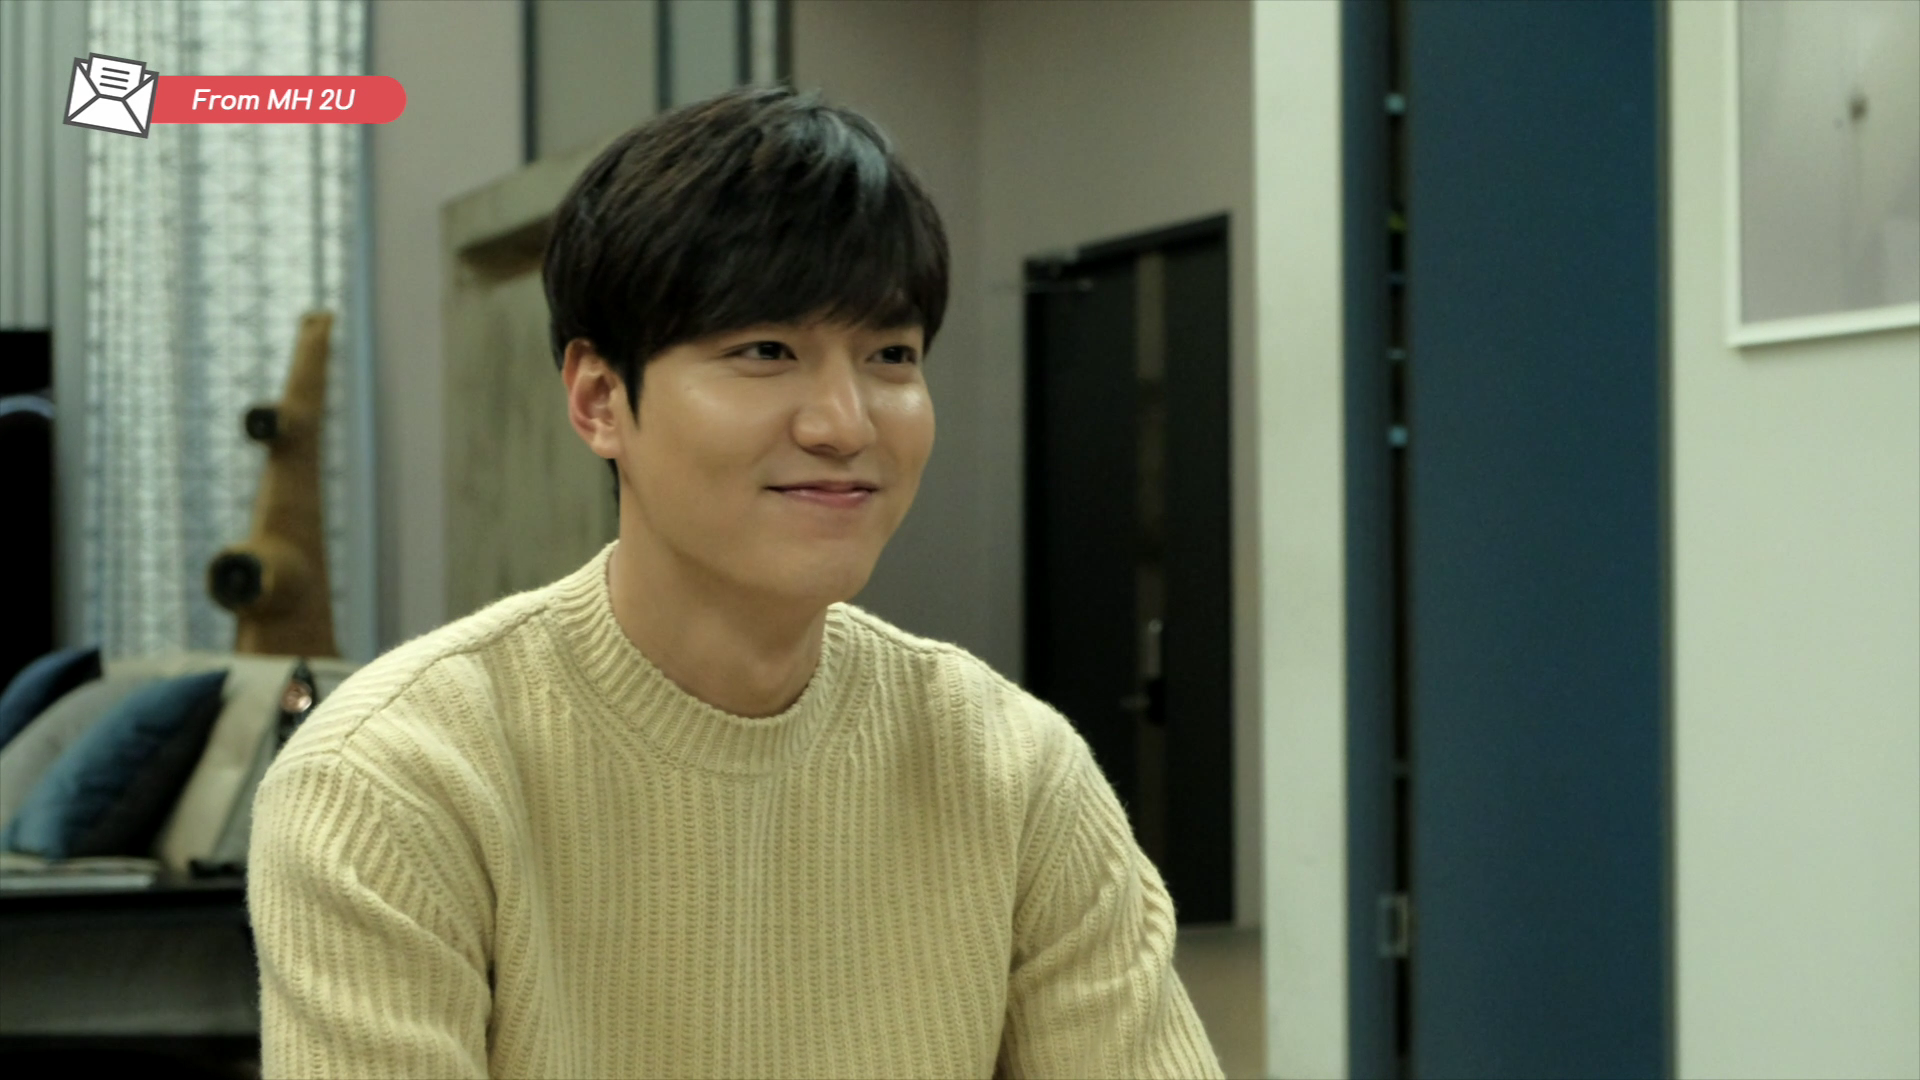 [LEE MIN HO] 8 Letters #EP8. From MH 2U (From. 이민호)